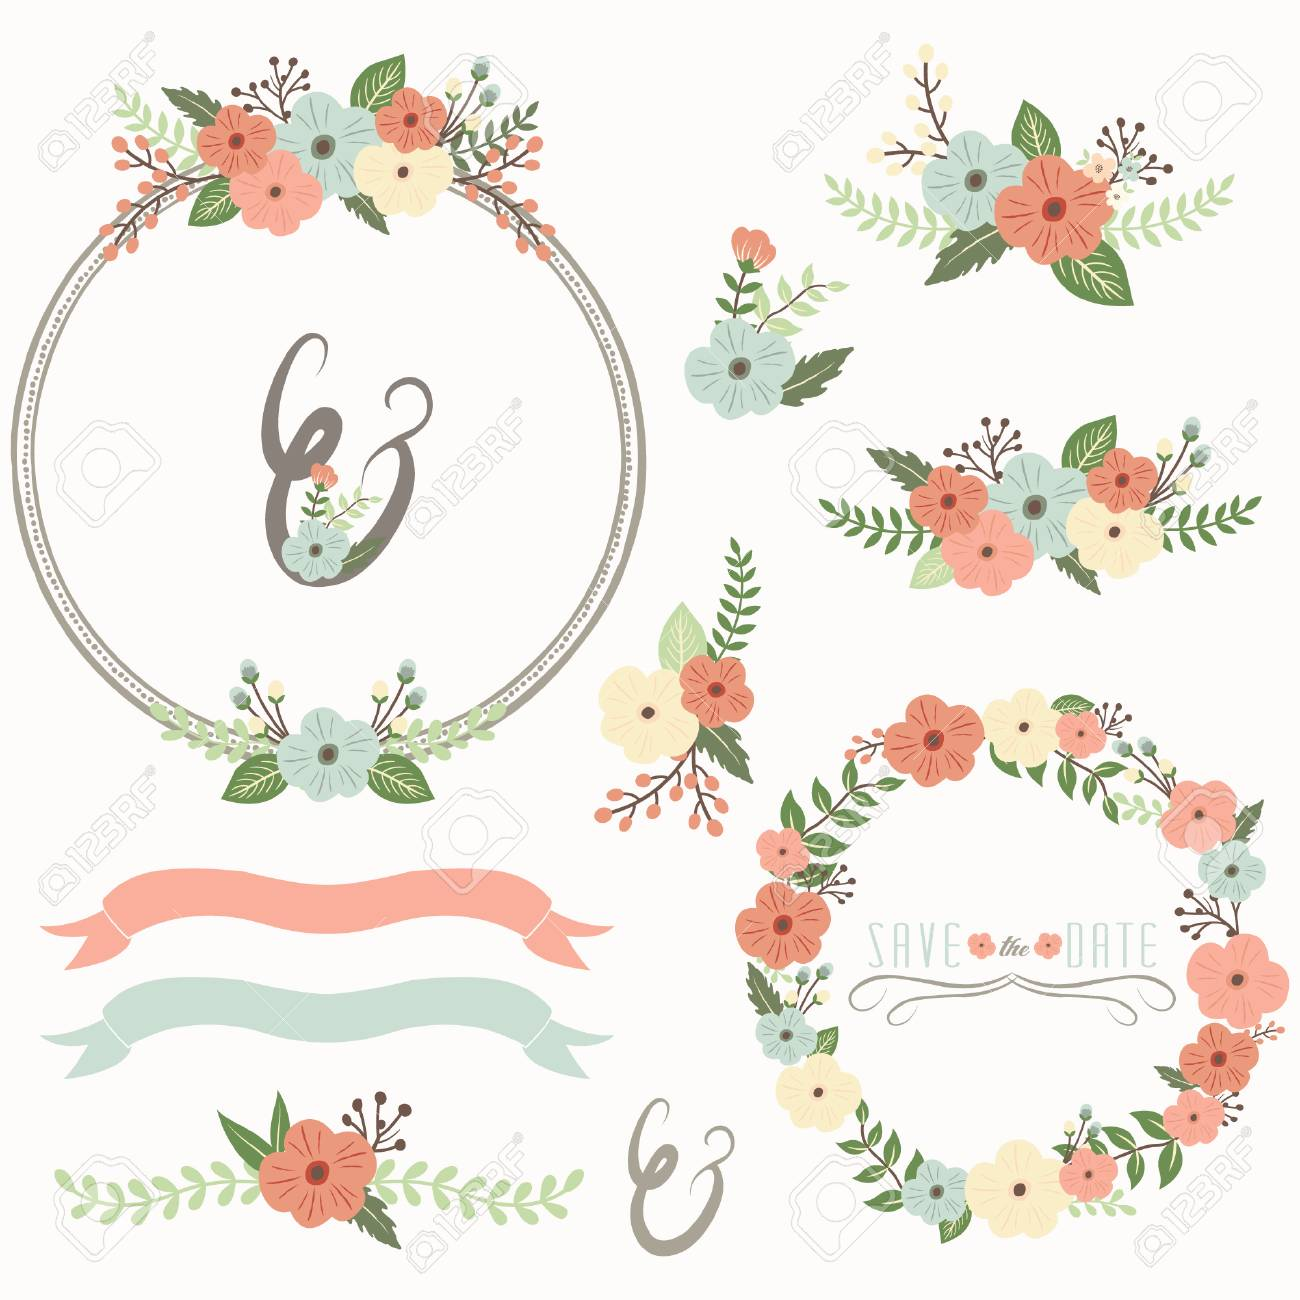 Rustic Flower Wreath Collection Set On White Background Vector Illustration Stock